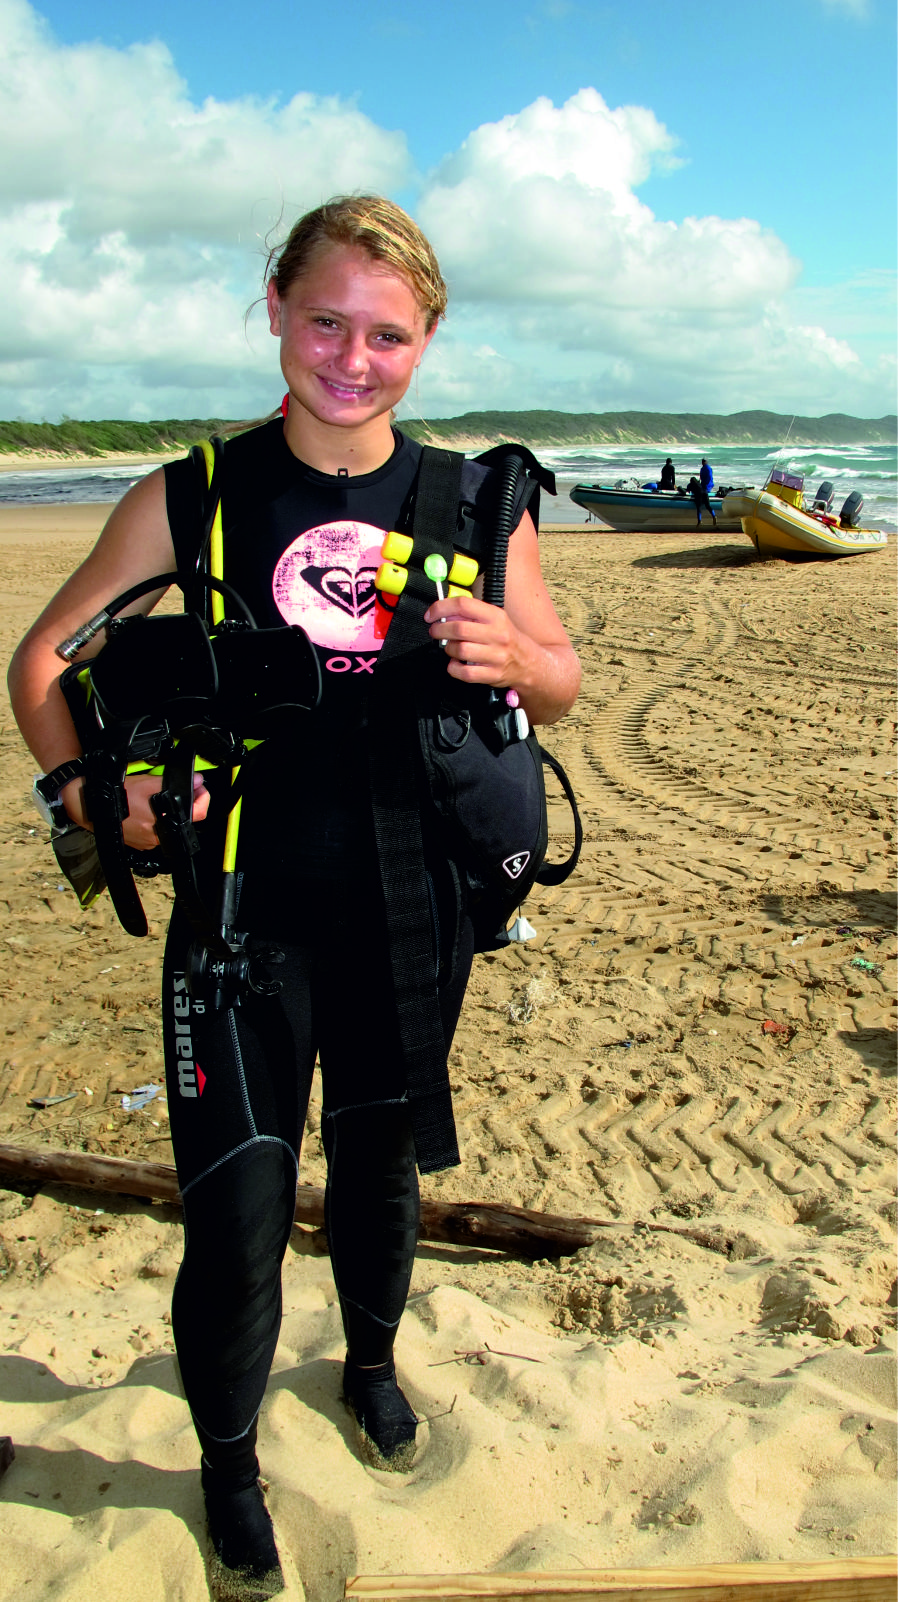 Gap Year Program - Best Gap Year ever at Coral Divers PADI 5 Star IDC Centre Sodwana Bay, South Africa  1